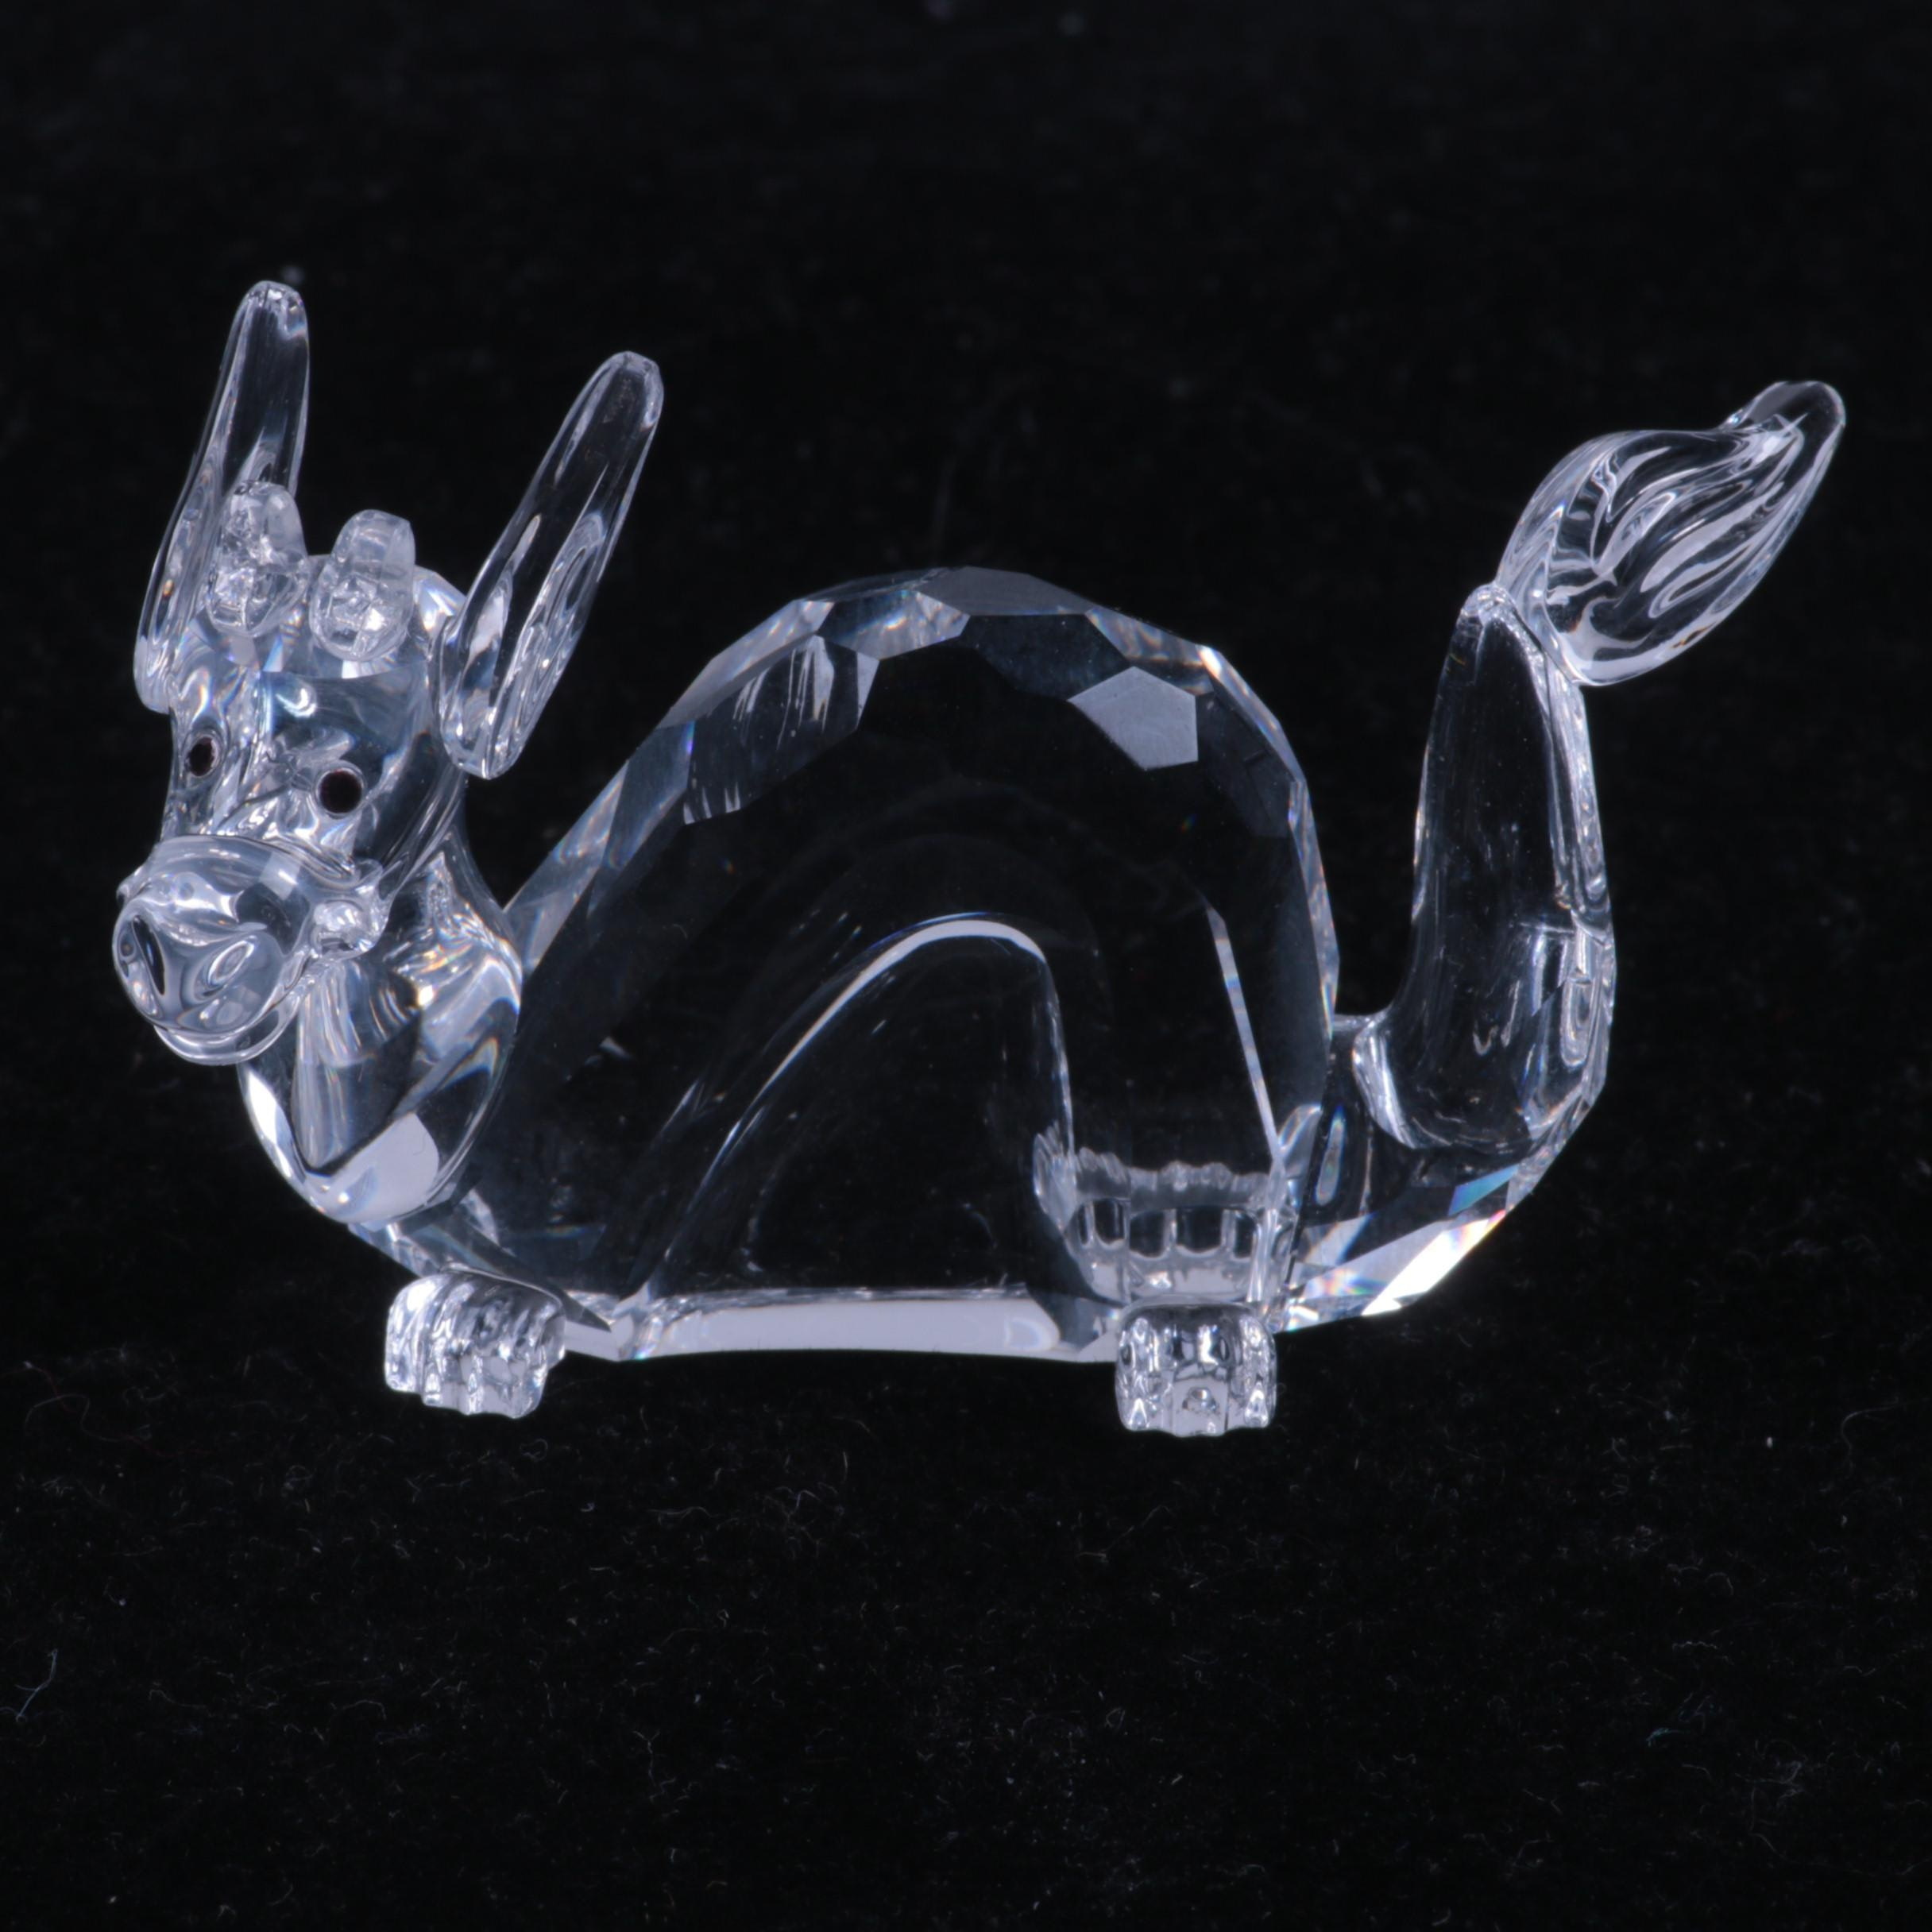 Swarovski Crystal Dragon Figurine